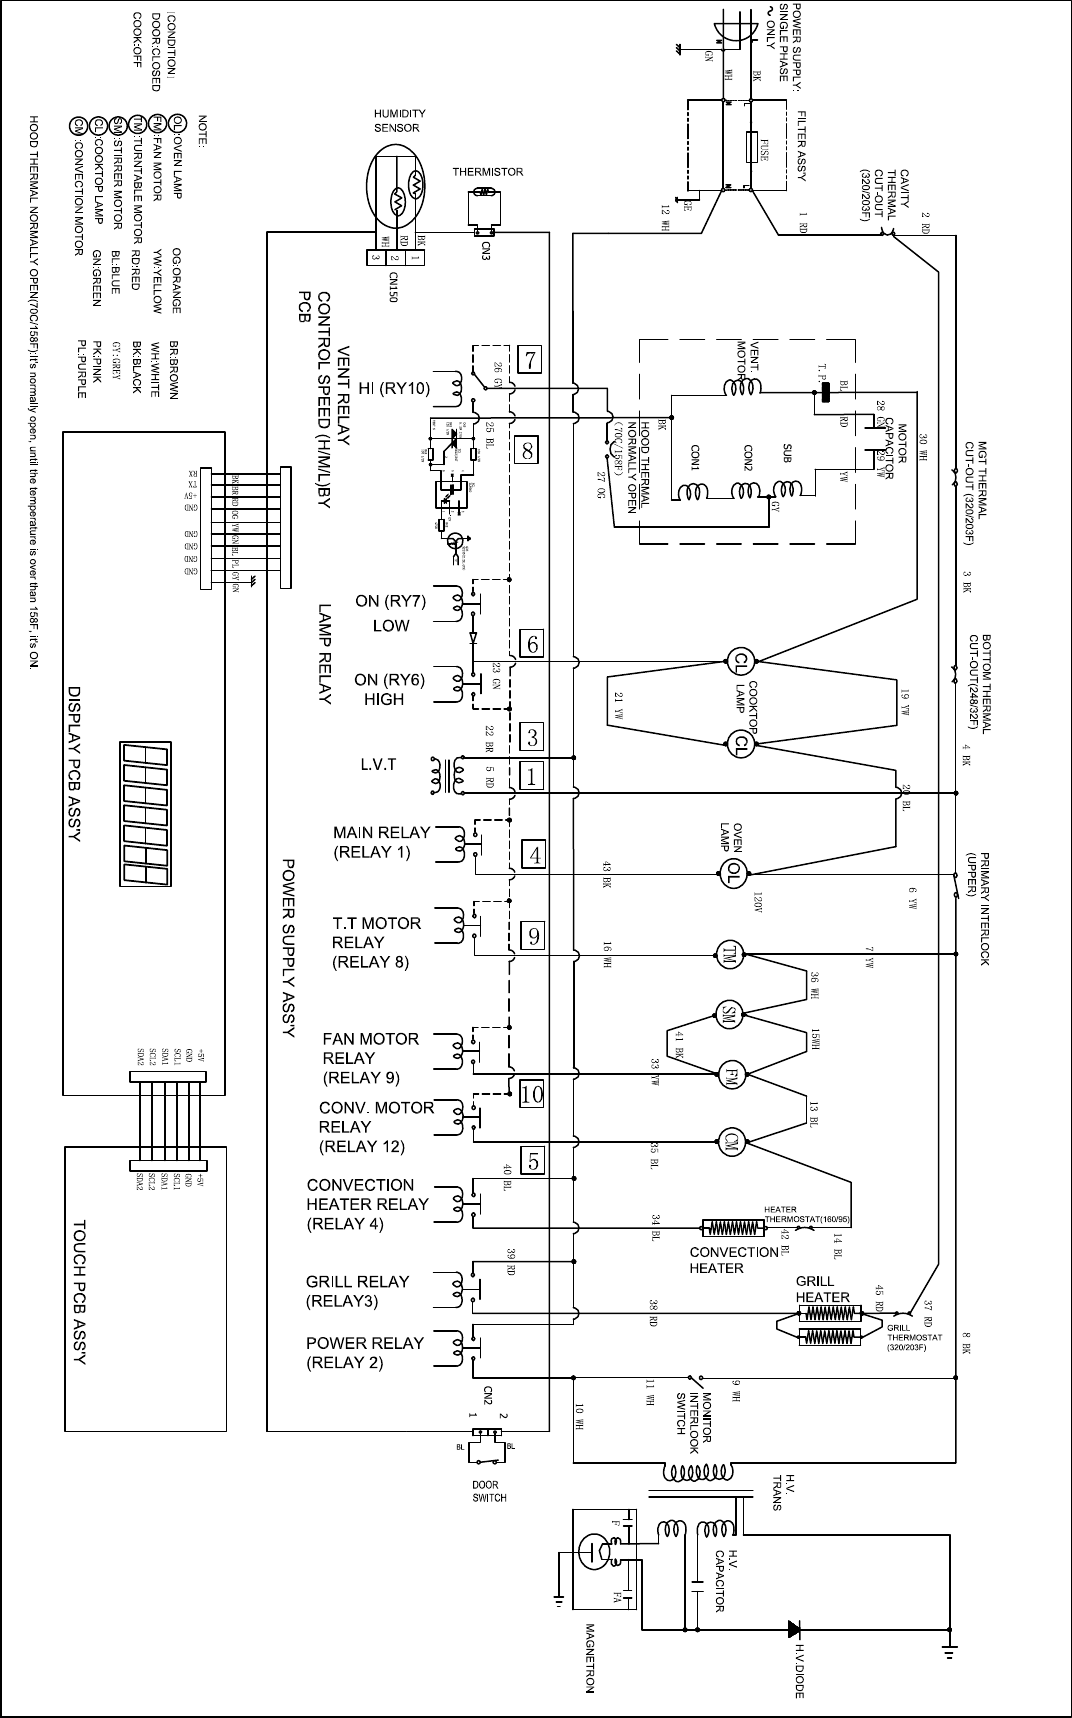 Microwave Wiring Diagram